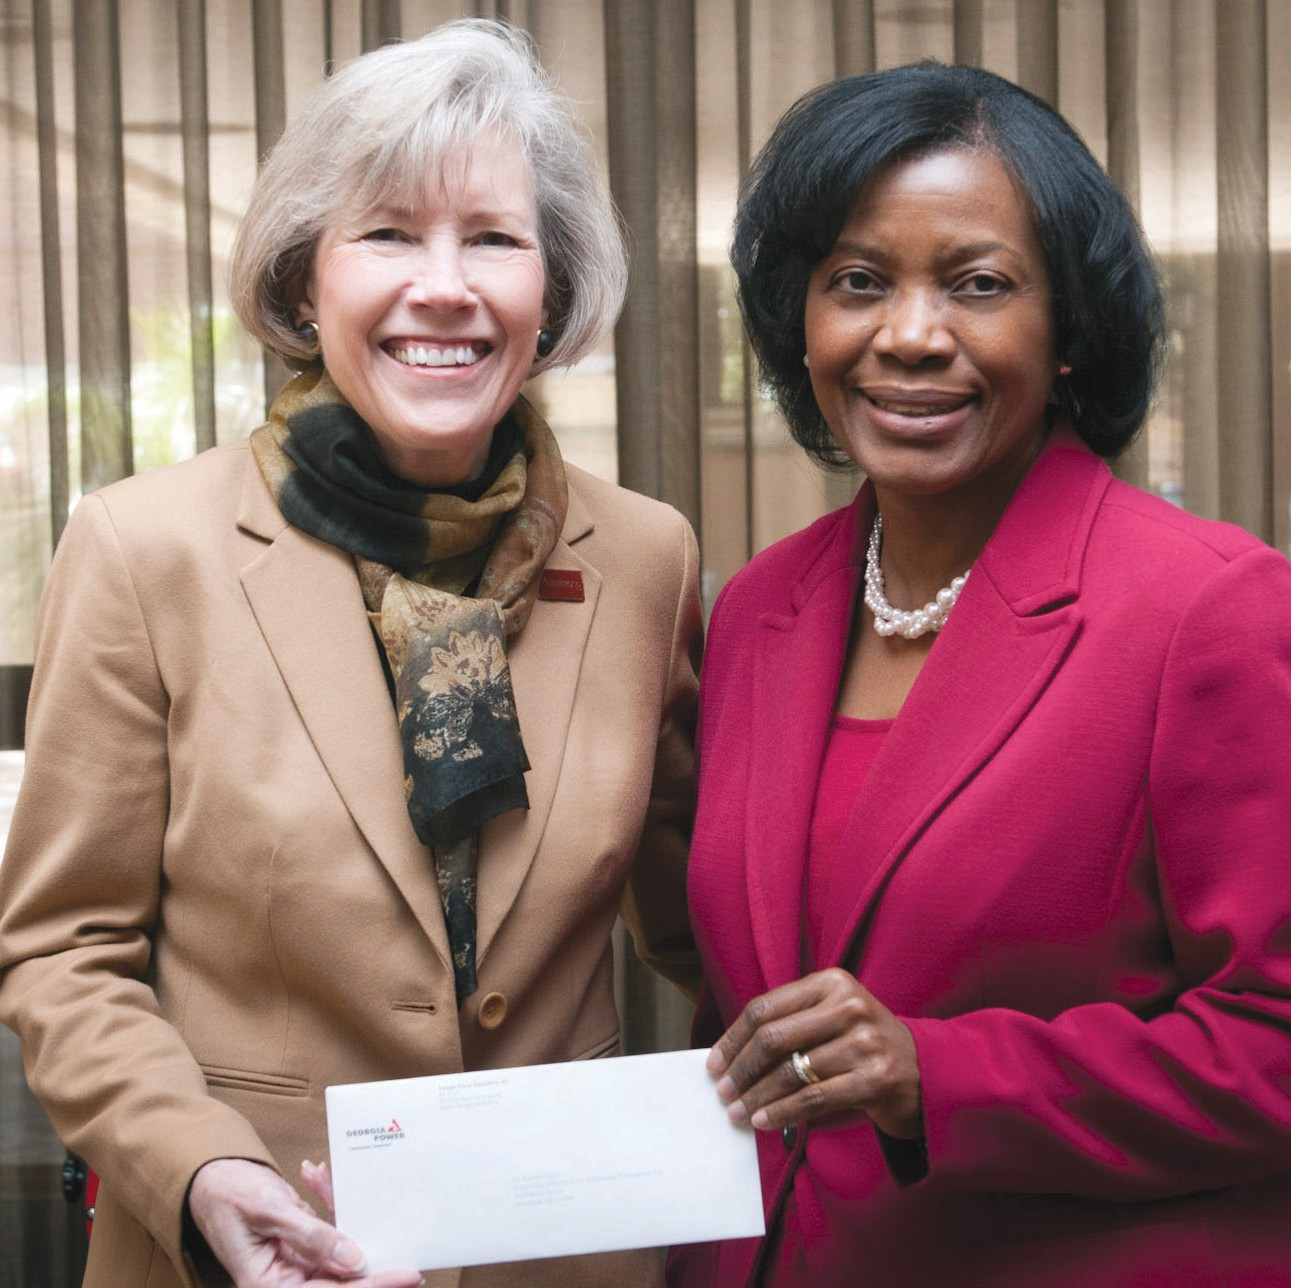 Georgia Power's Vice President Cathy Hill (right) recently presented Armstrong president Linda M. Bleicken (left) with a check for $20,000 from the Georgia Power Foundation to support Science, Technology, Engineering and Mathematics (STEM) education initiatives at the university.